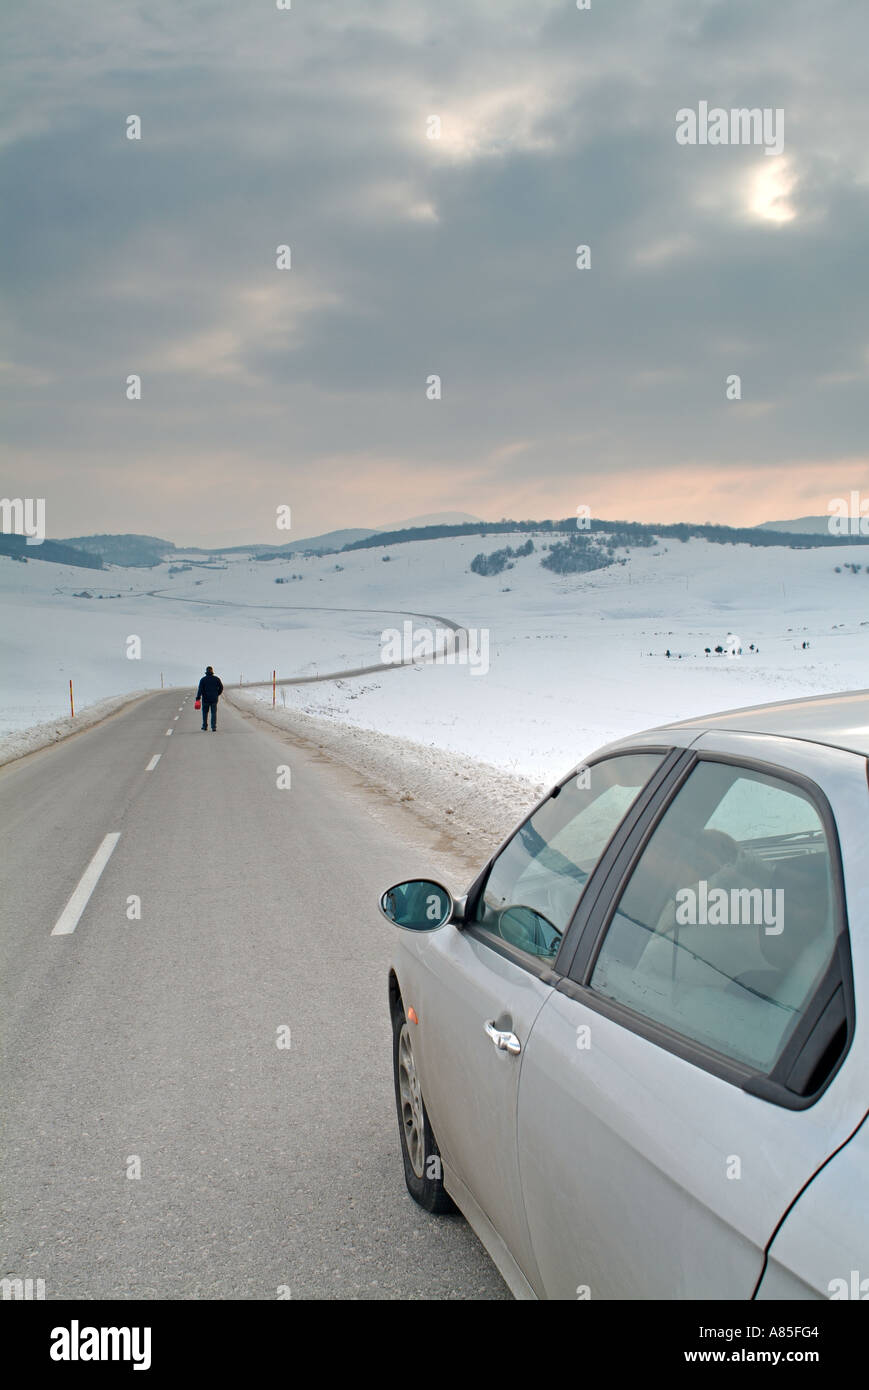 Man Leaves His Spouse in the Car to Walk Along an Isolated Road in a Snow Covered Valley in Search of Fuel - Stock Image